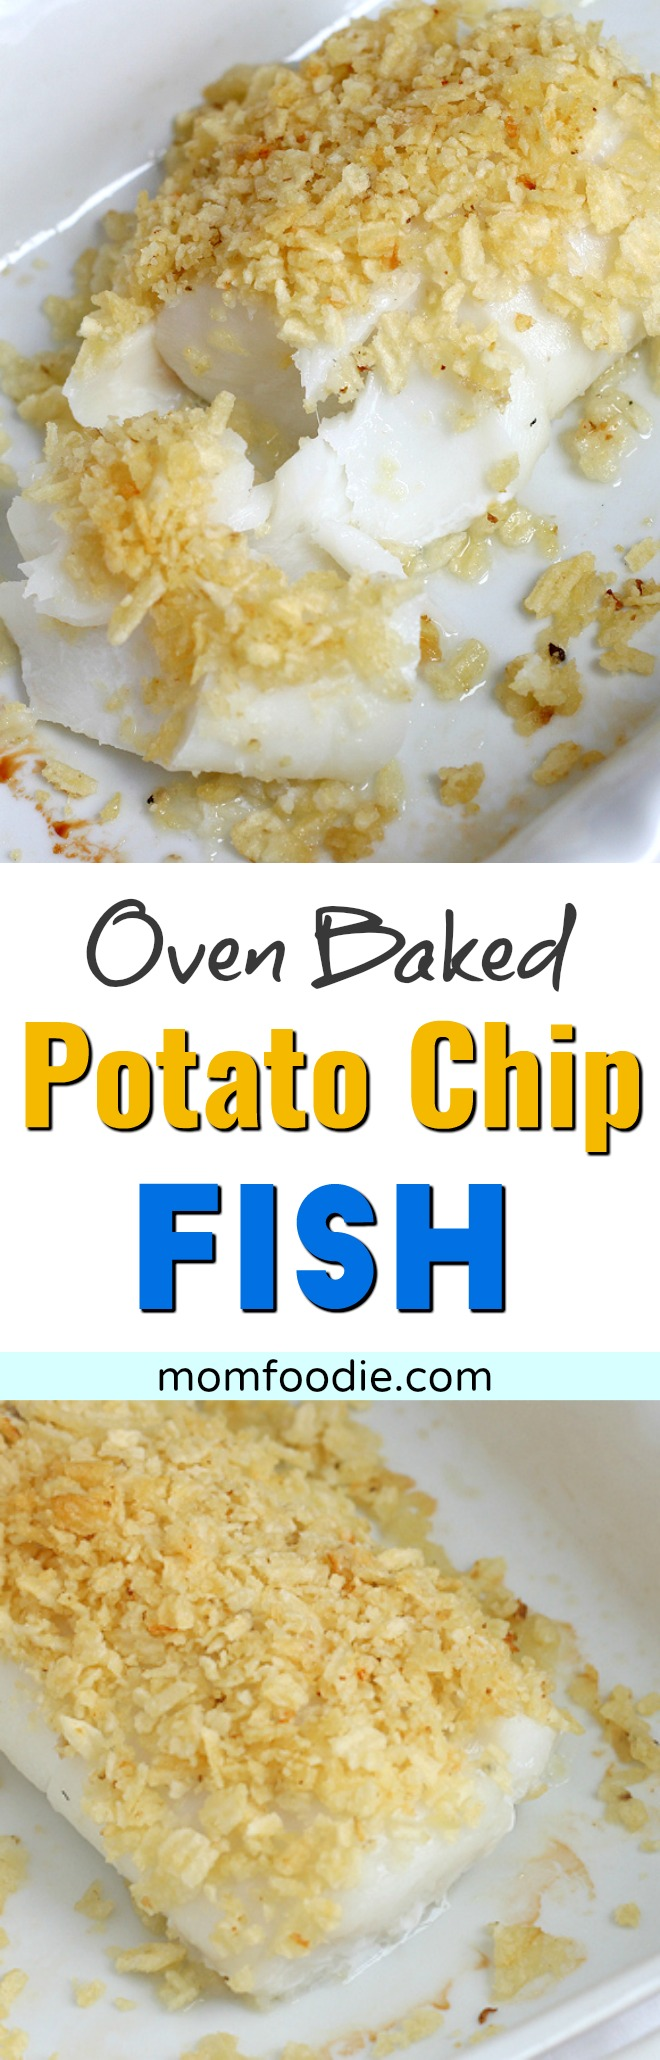 Oven Baked Potato Chip Fish - one of my favorite cod recipes.